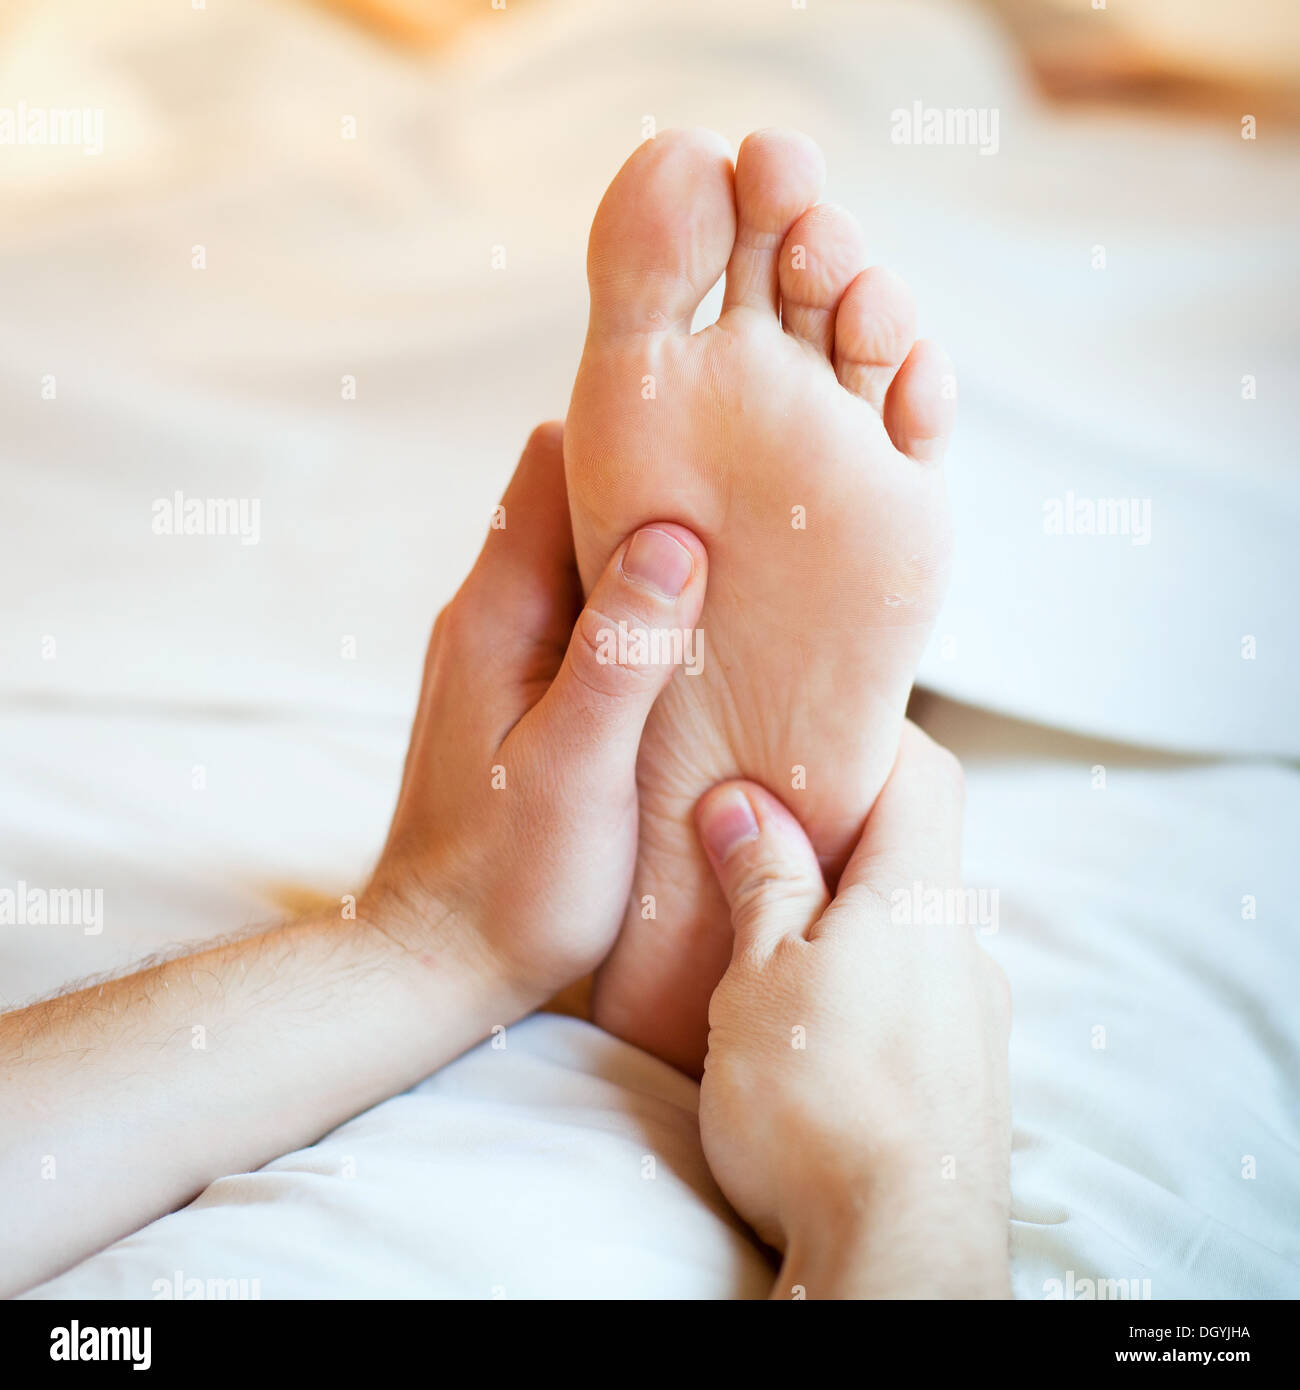 foot massage - Stock Image